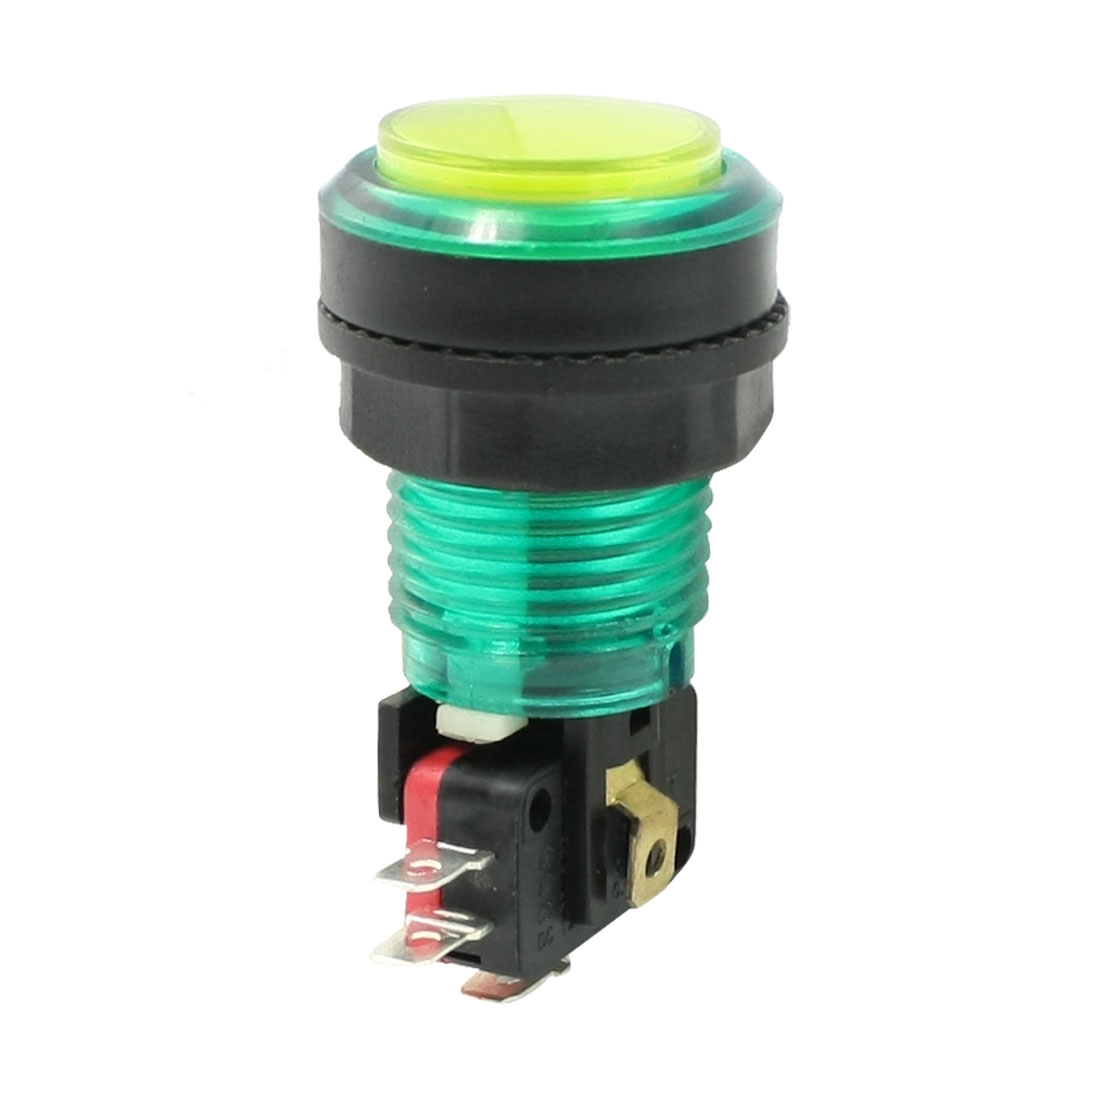 24mm Dia Yellow Flat Round Cap Momentary Push Button Switch